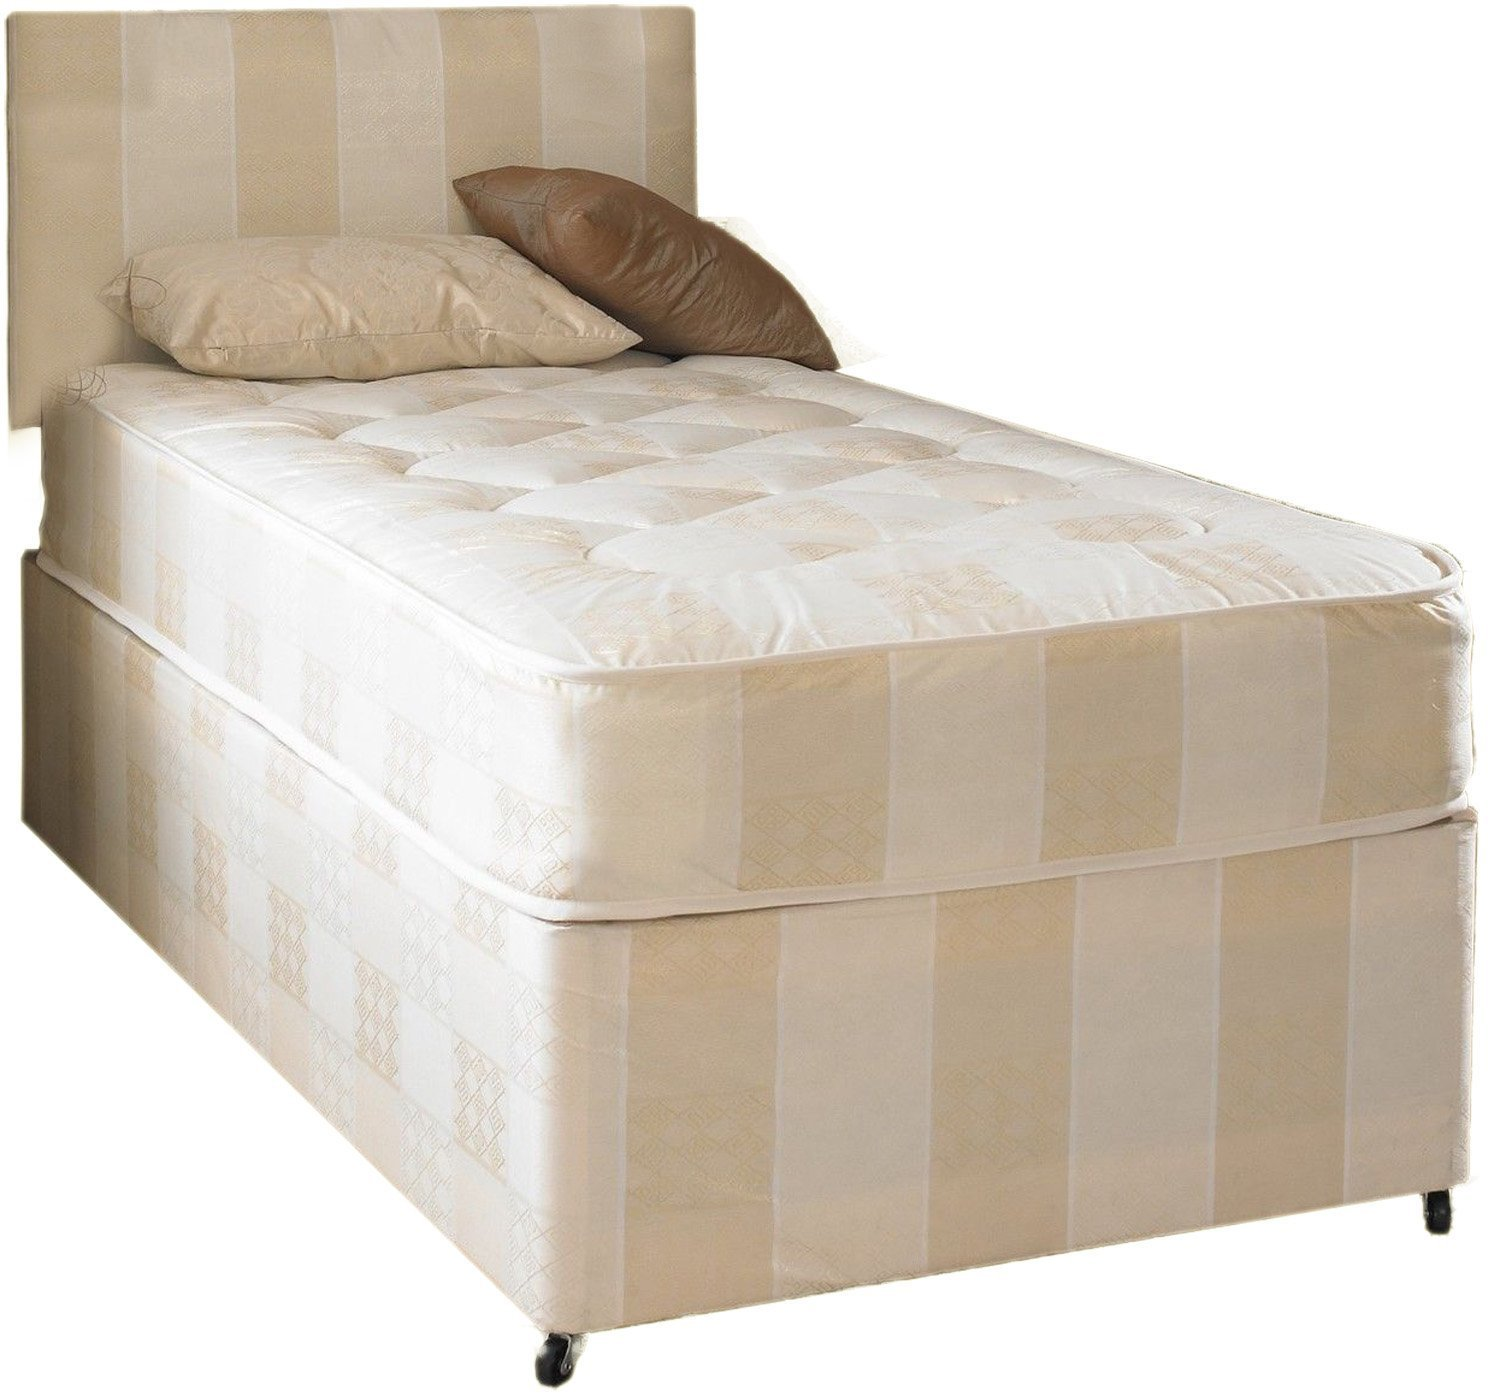 Deep Quilt Divan Bed Including Deep Quilt Mattress And Headboard (Available in 2'6 Small Single - 3'0 Single - 3'6 Large Single - 4'0 Small Double - 4'6 Double - 5'0 KingSize) (3x6'3 Single) In2Bed LTD